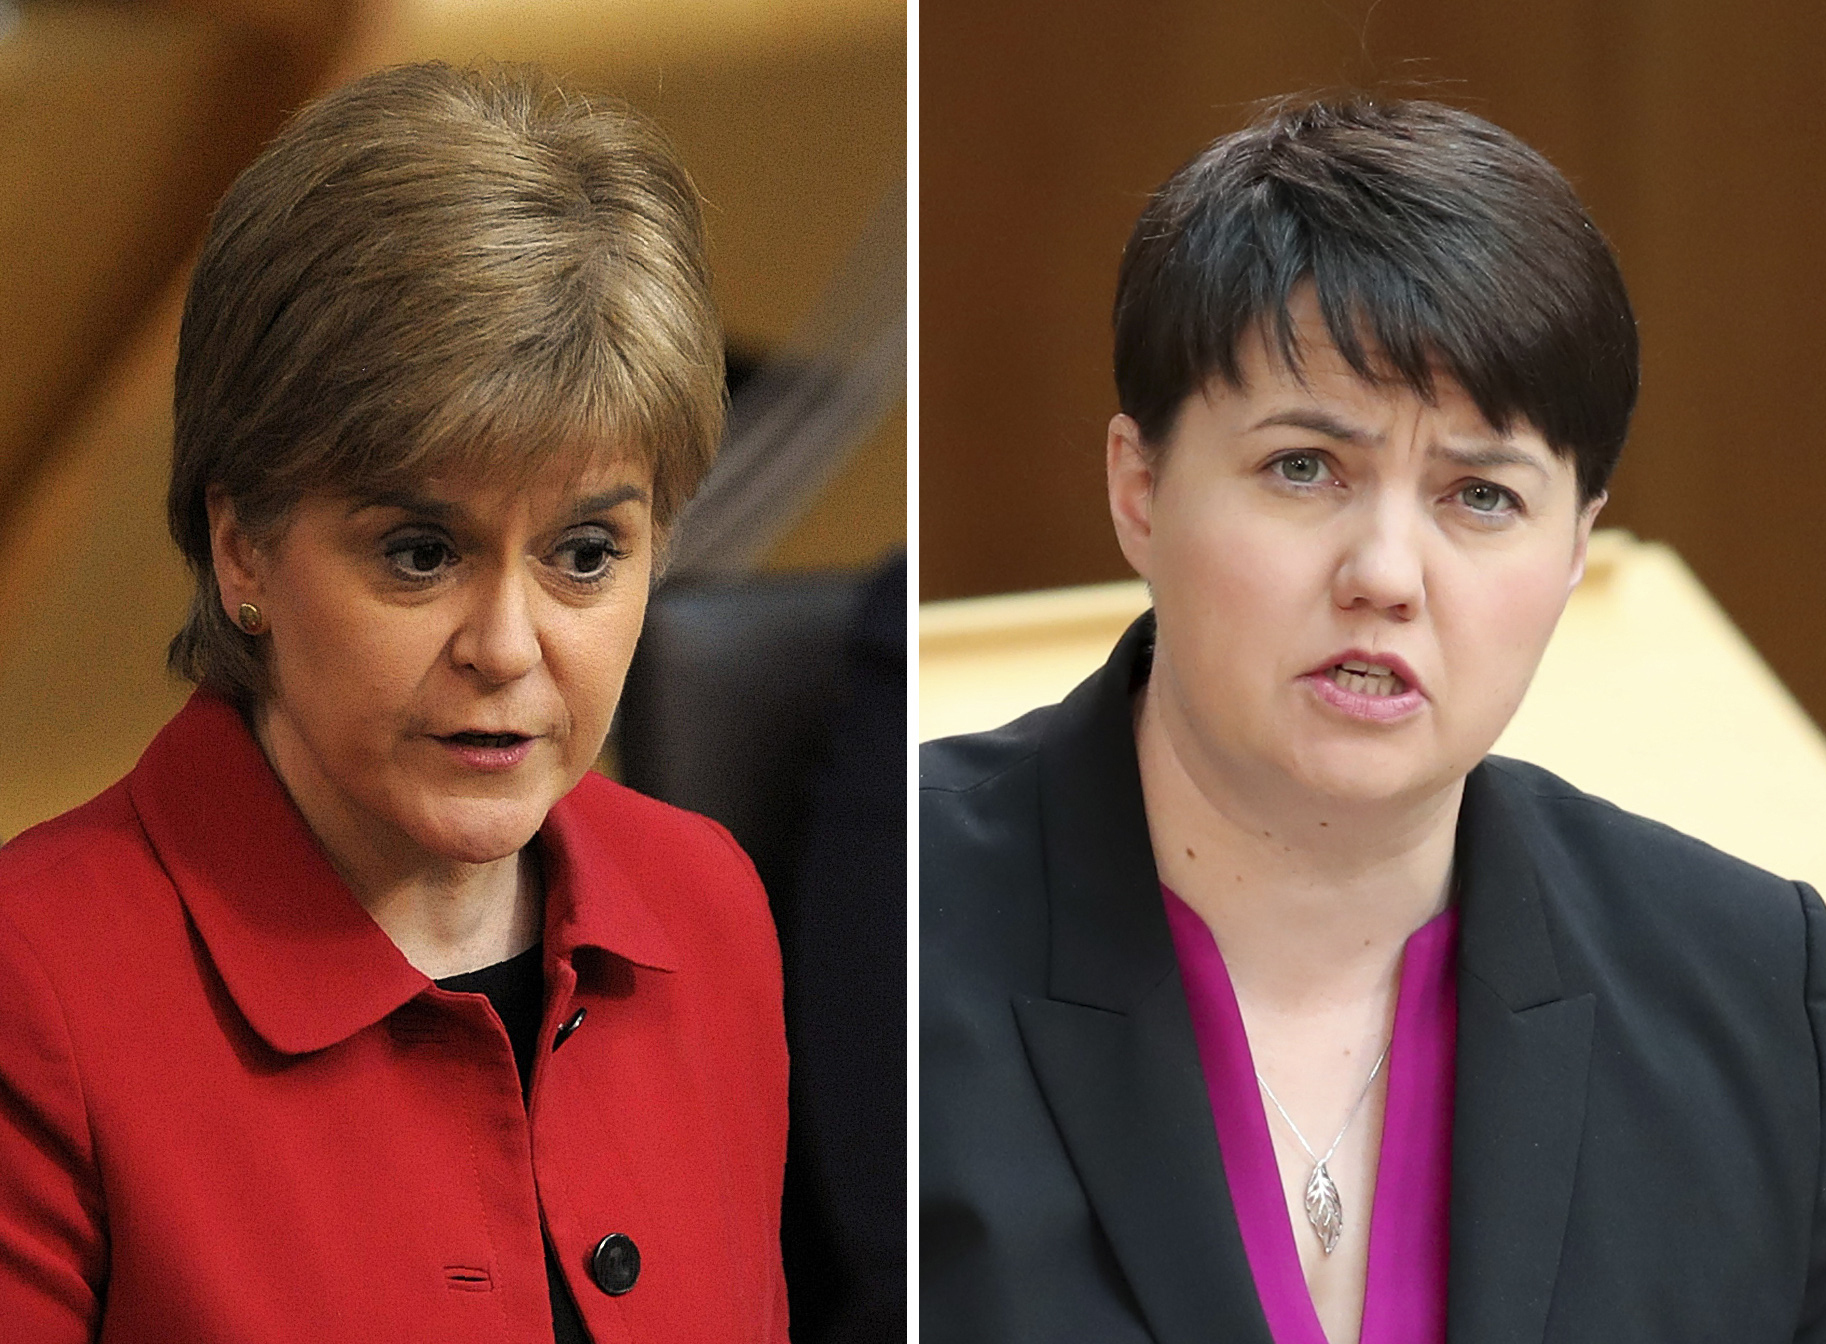 First Minister Nicola Sturgeon (left) and Scottish Conservative party leader Ruth Davidson. (PA Wire)